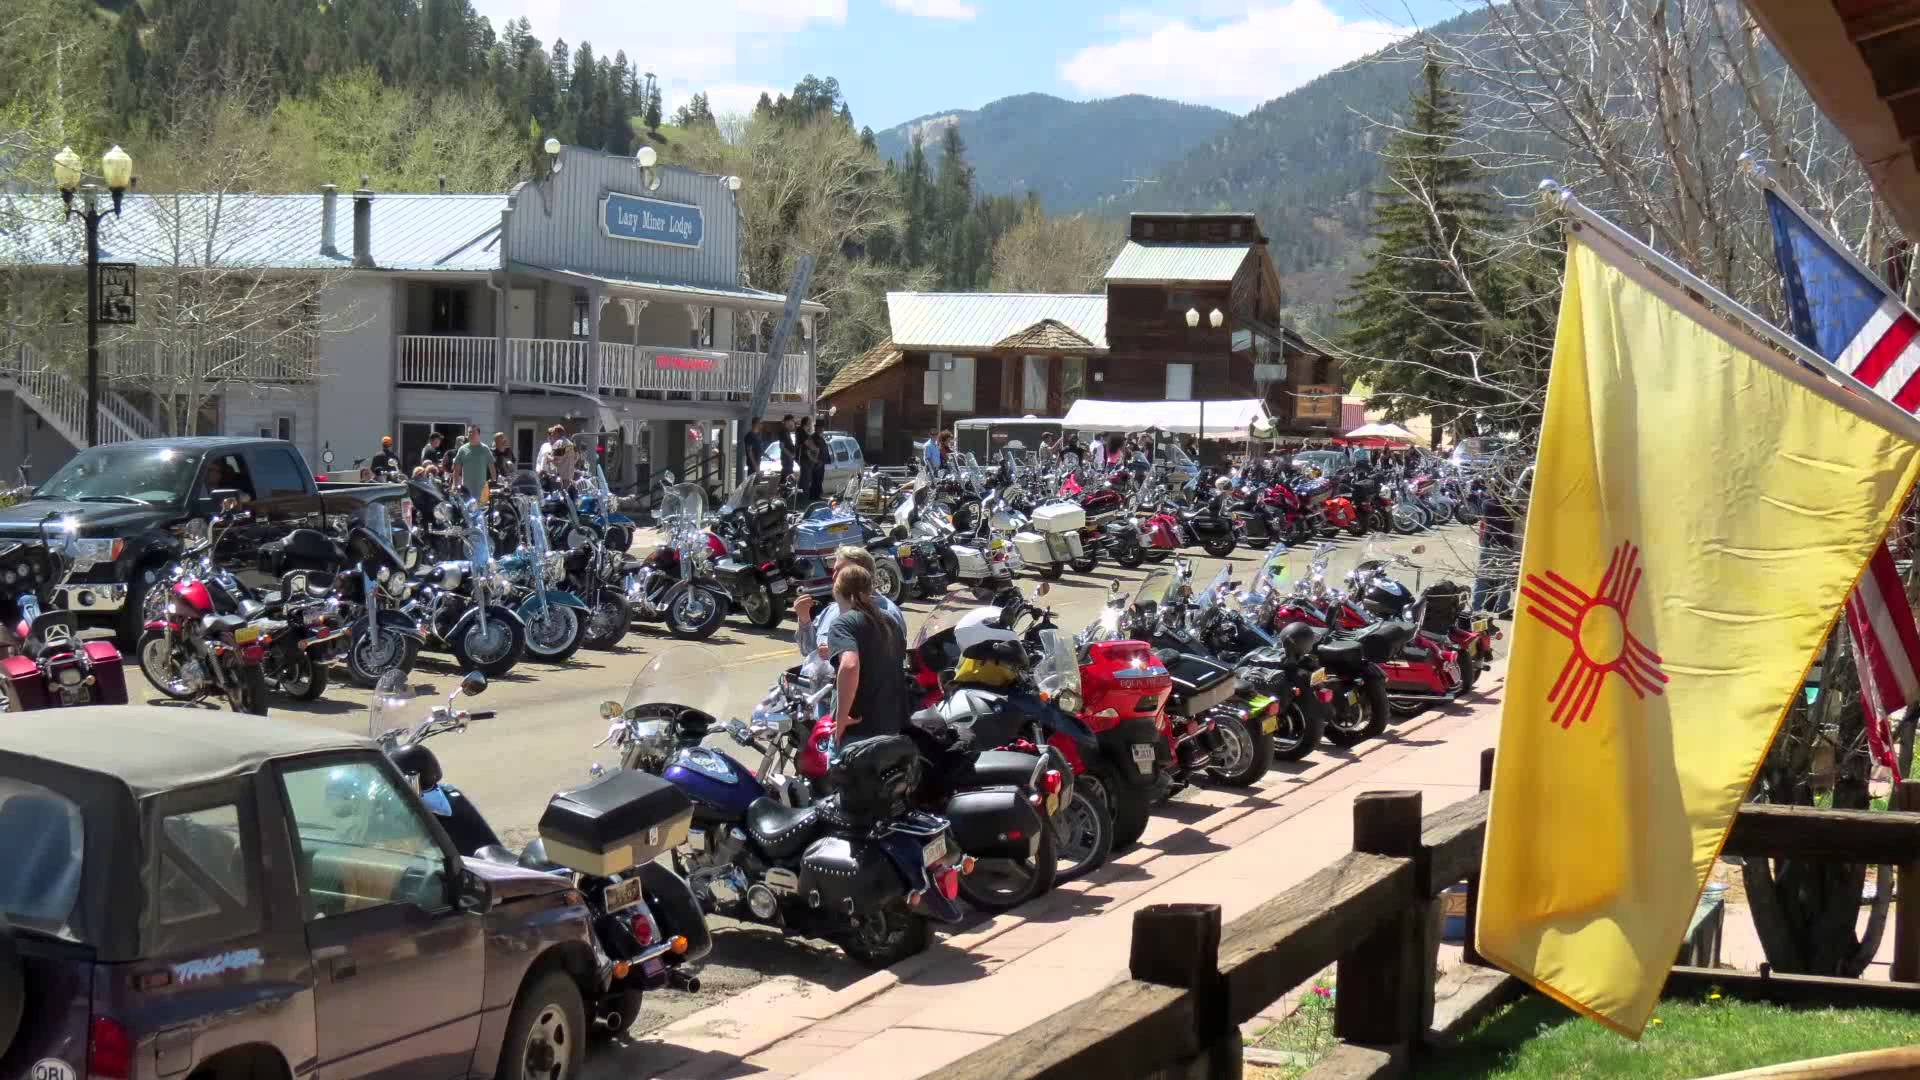 Sturgis Mississippi Getting Set For 'The Rally' 2015 | Top Speed